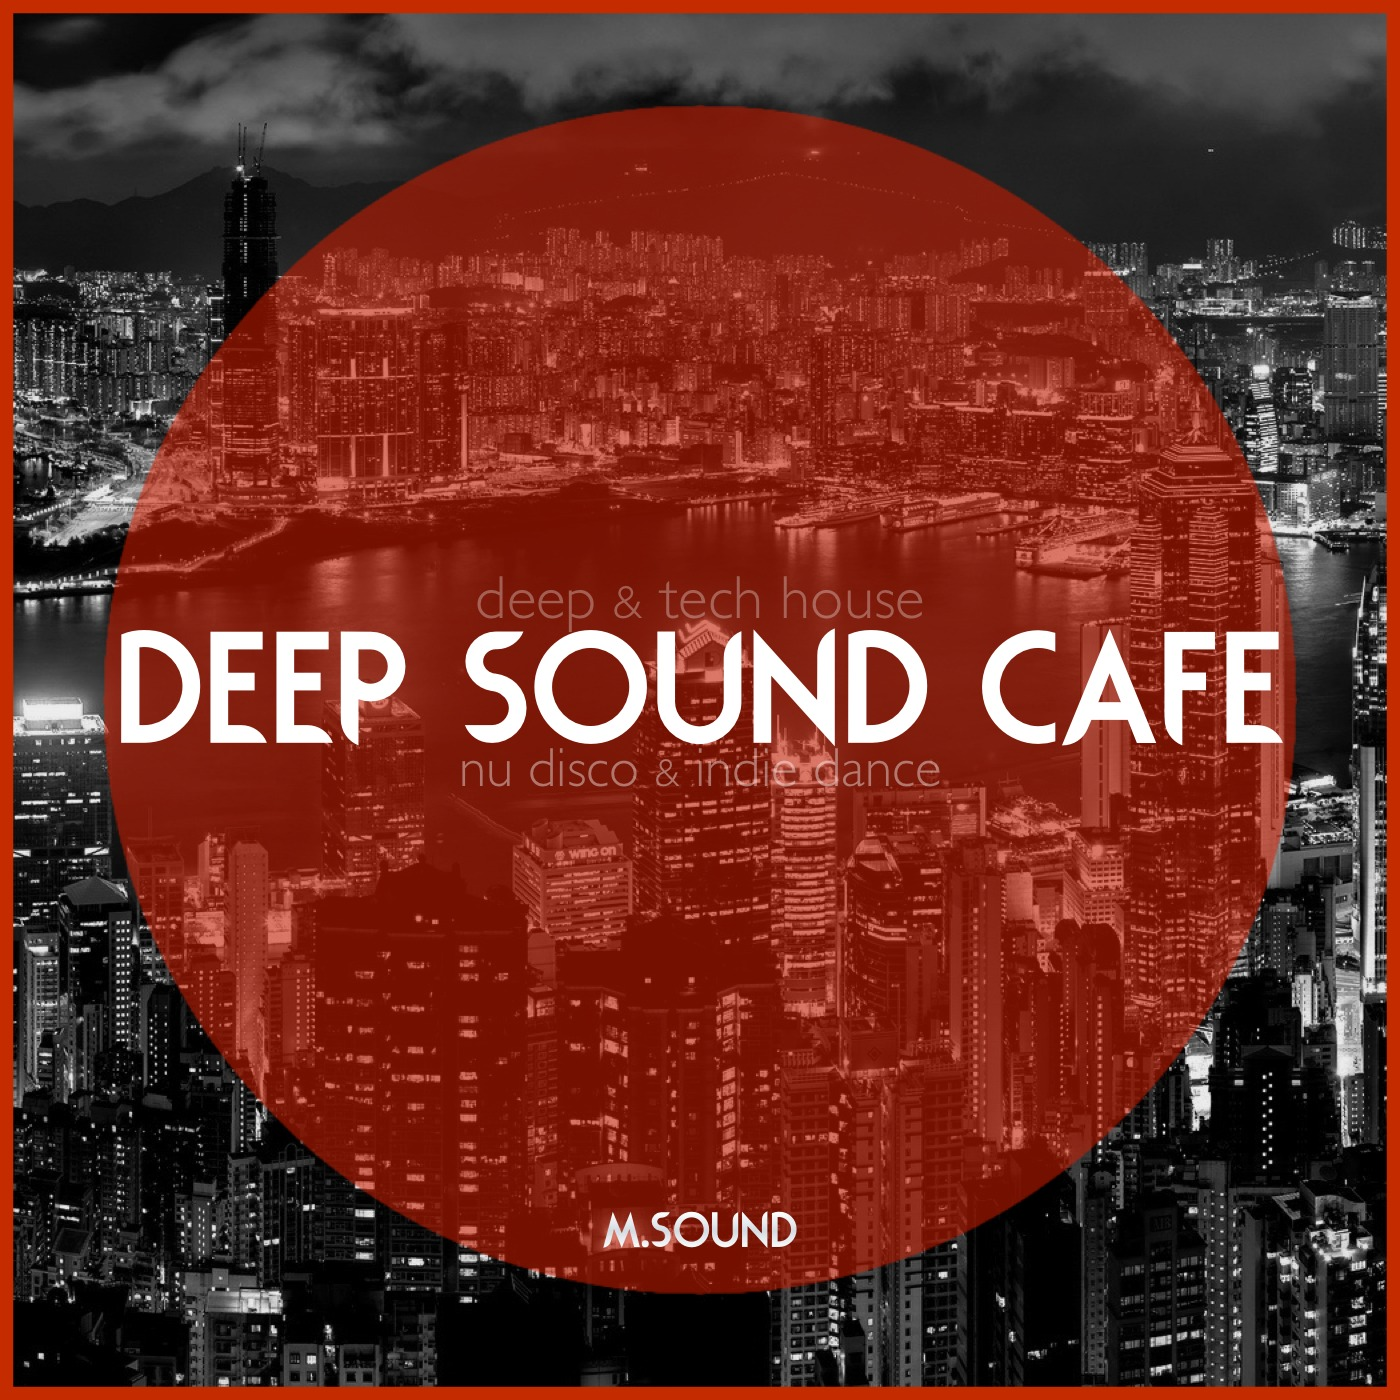 DEEP SOUND CAFE